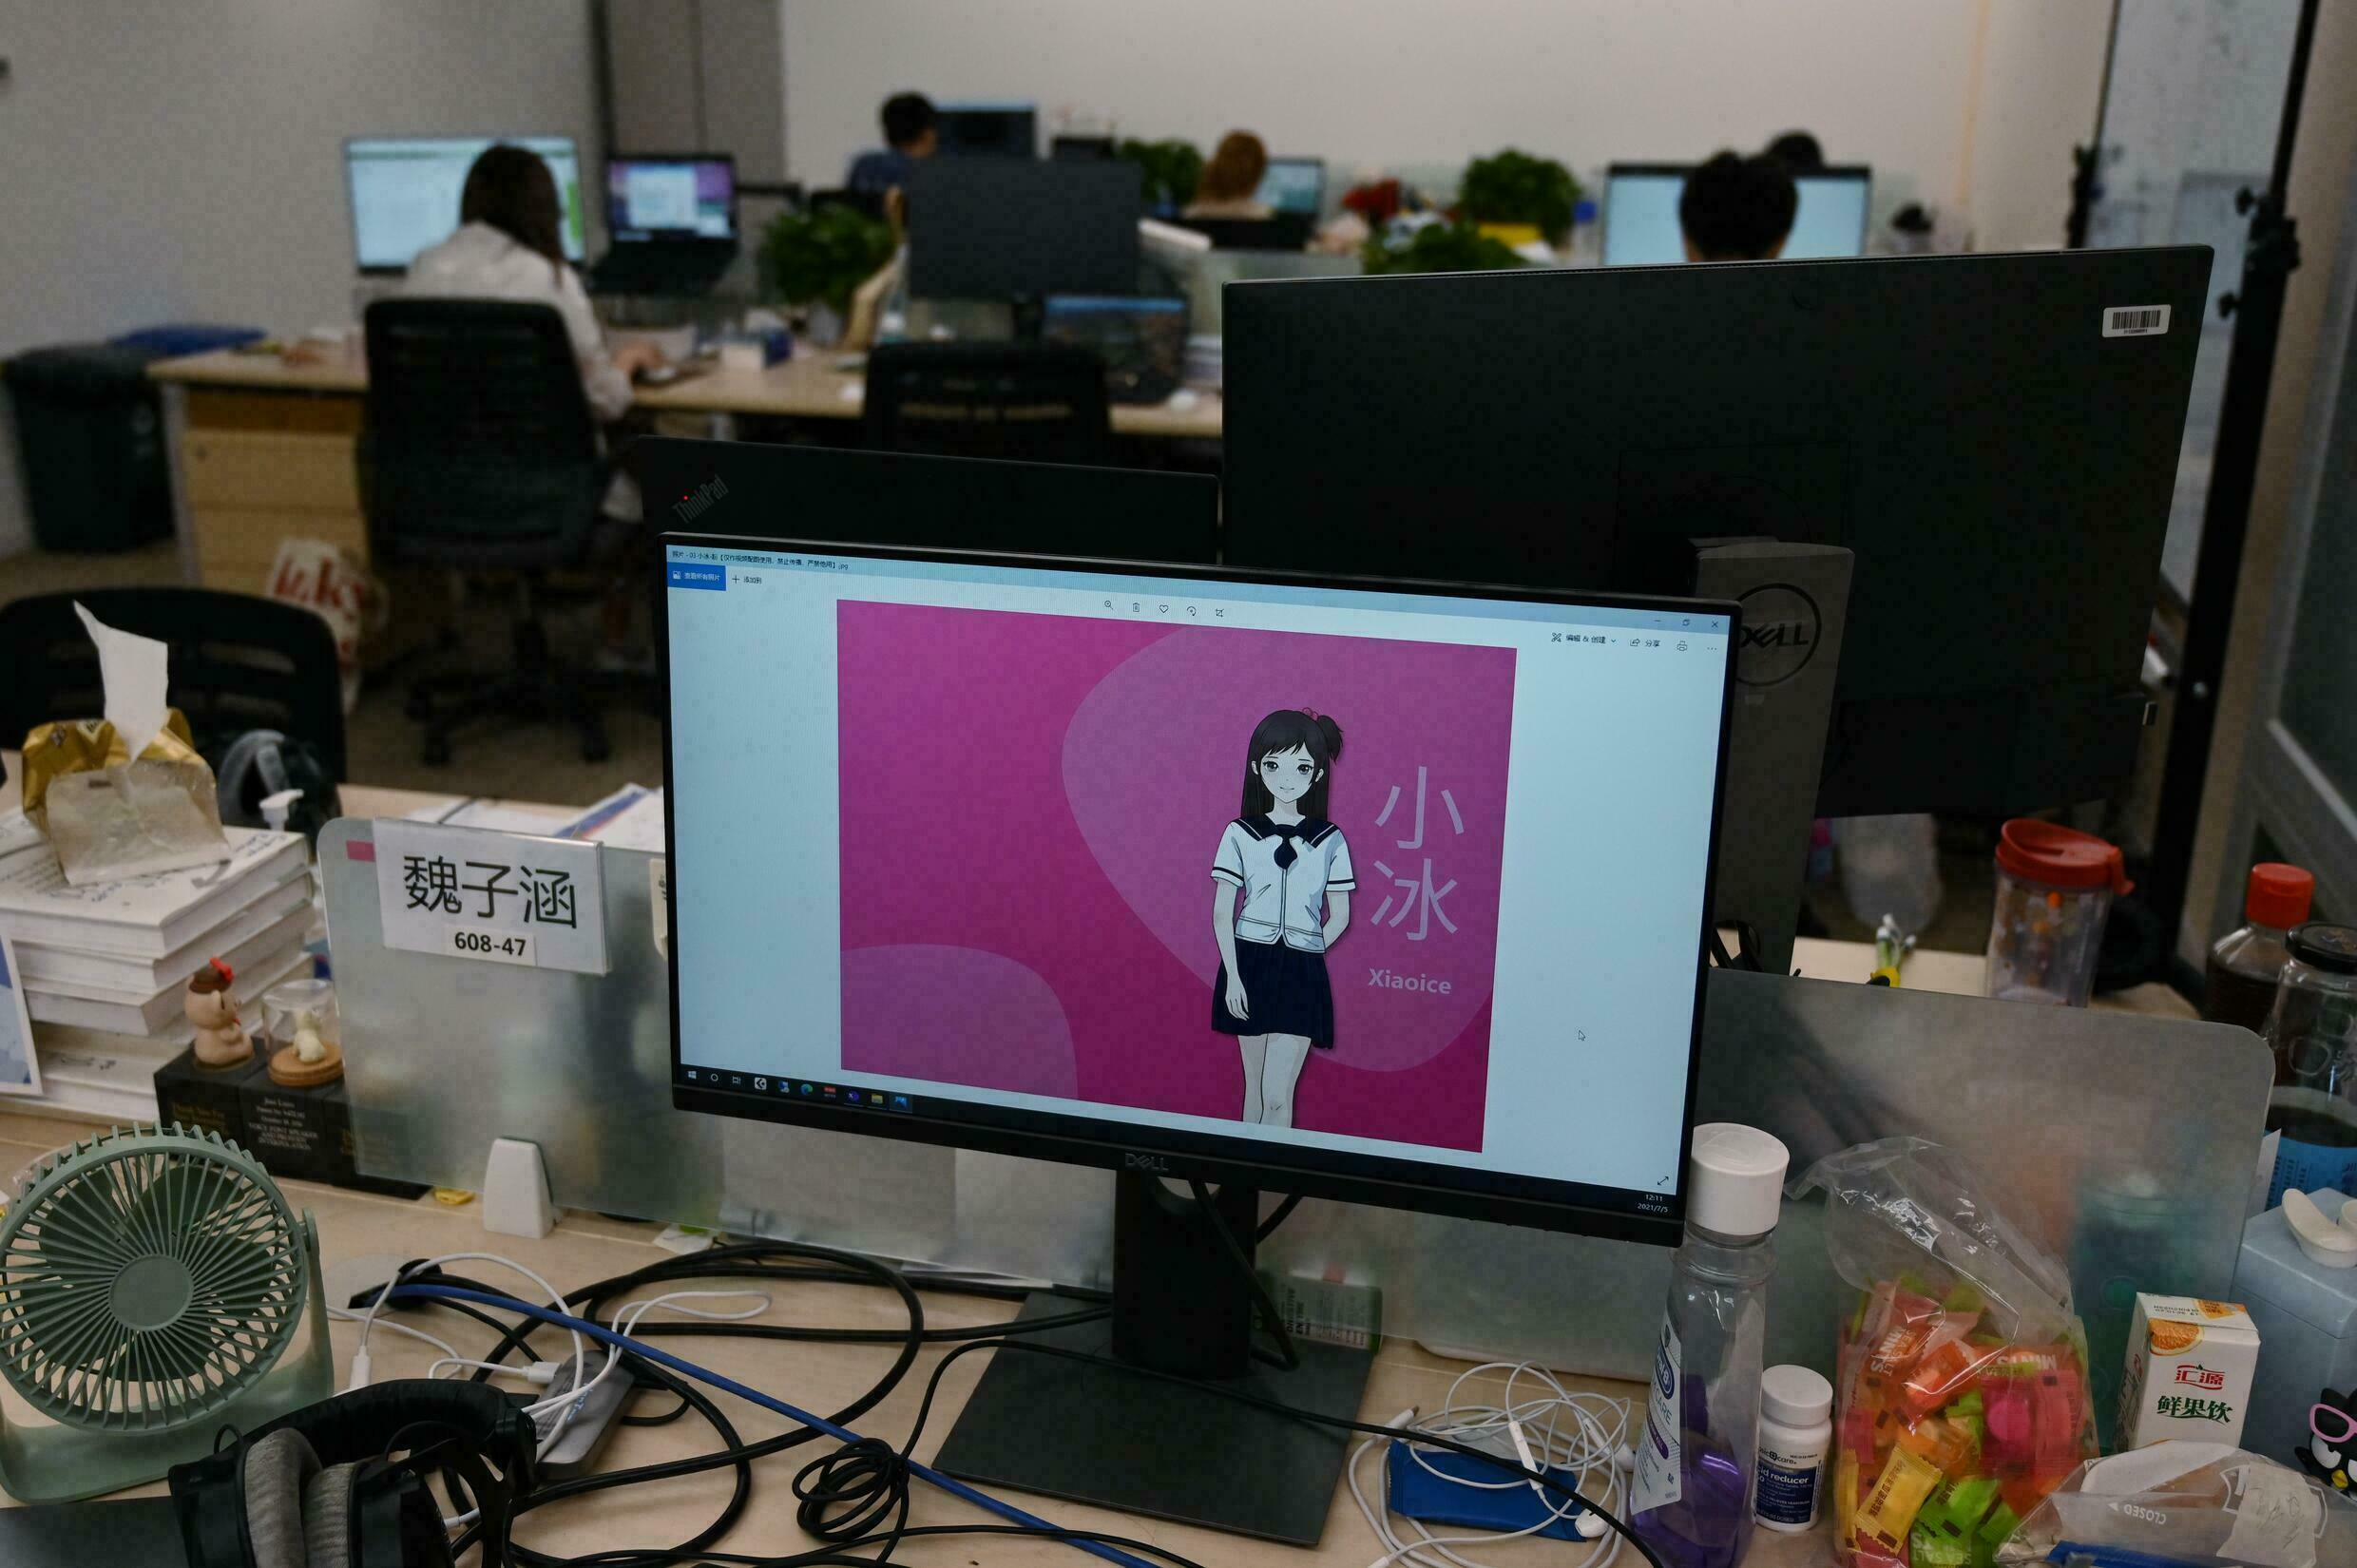 The main screen of the XiaoIce website at the corporate headquarters, July 5, 2021 in Beijing